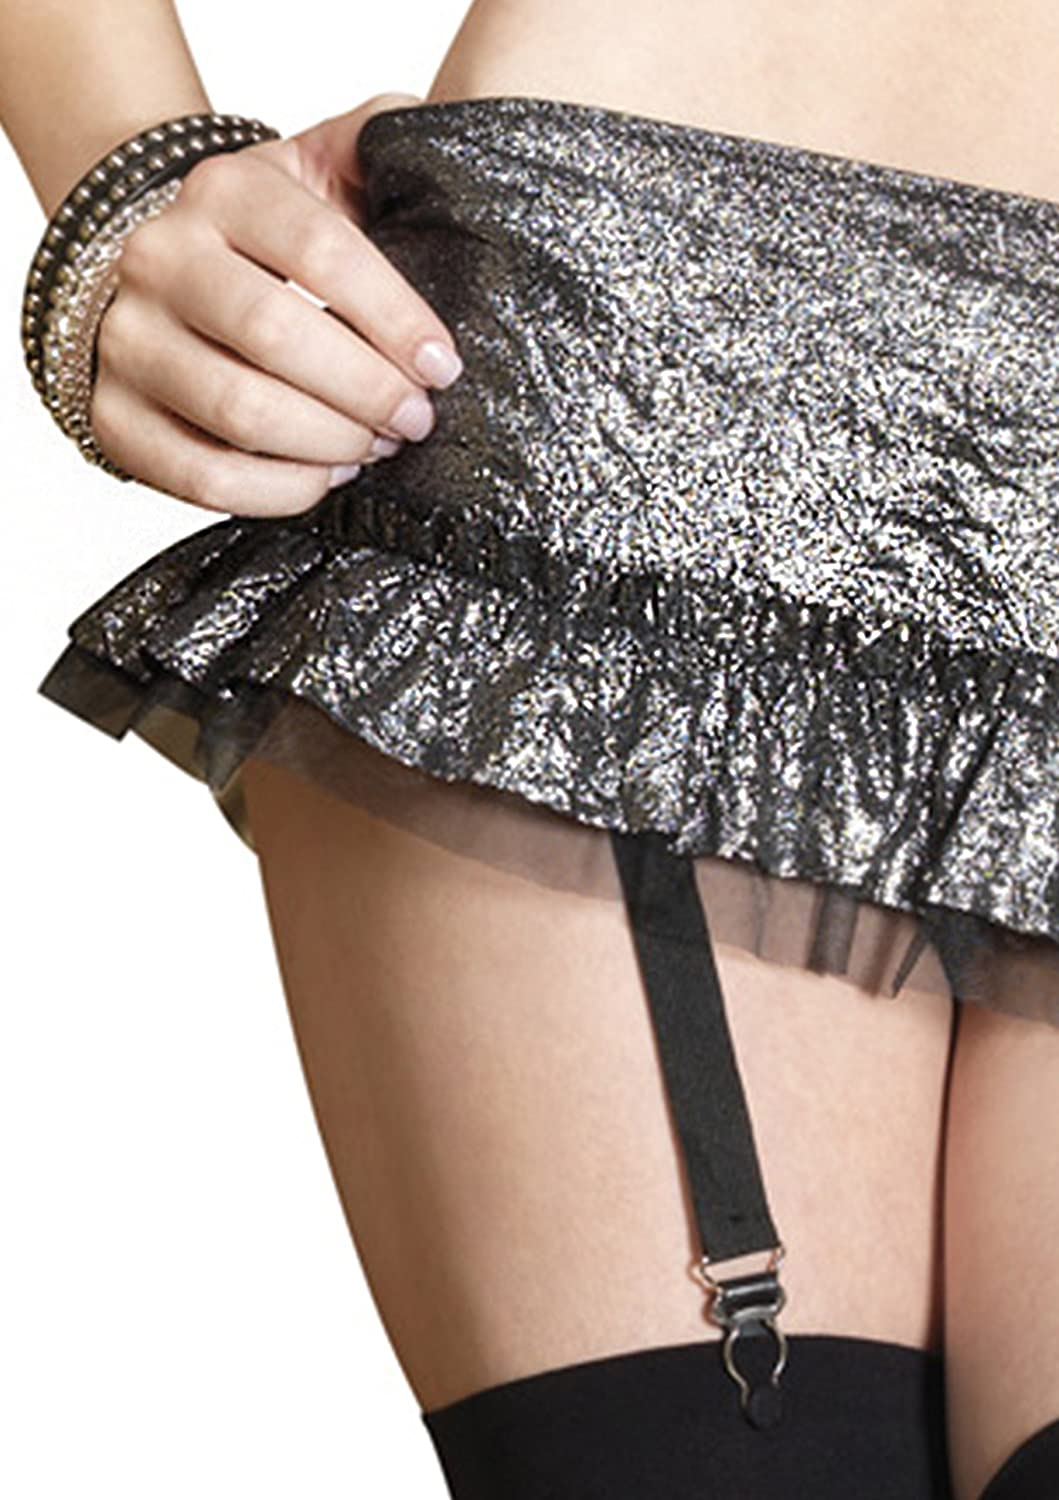 553a43aec Leg Avenue Women s Platinum Crushed Foil Wrap Top and Garter Mini Skirt   Amazon.in  Clothing   Accessories